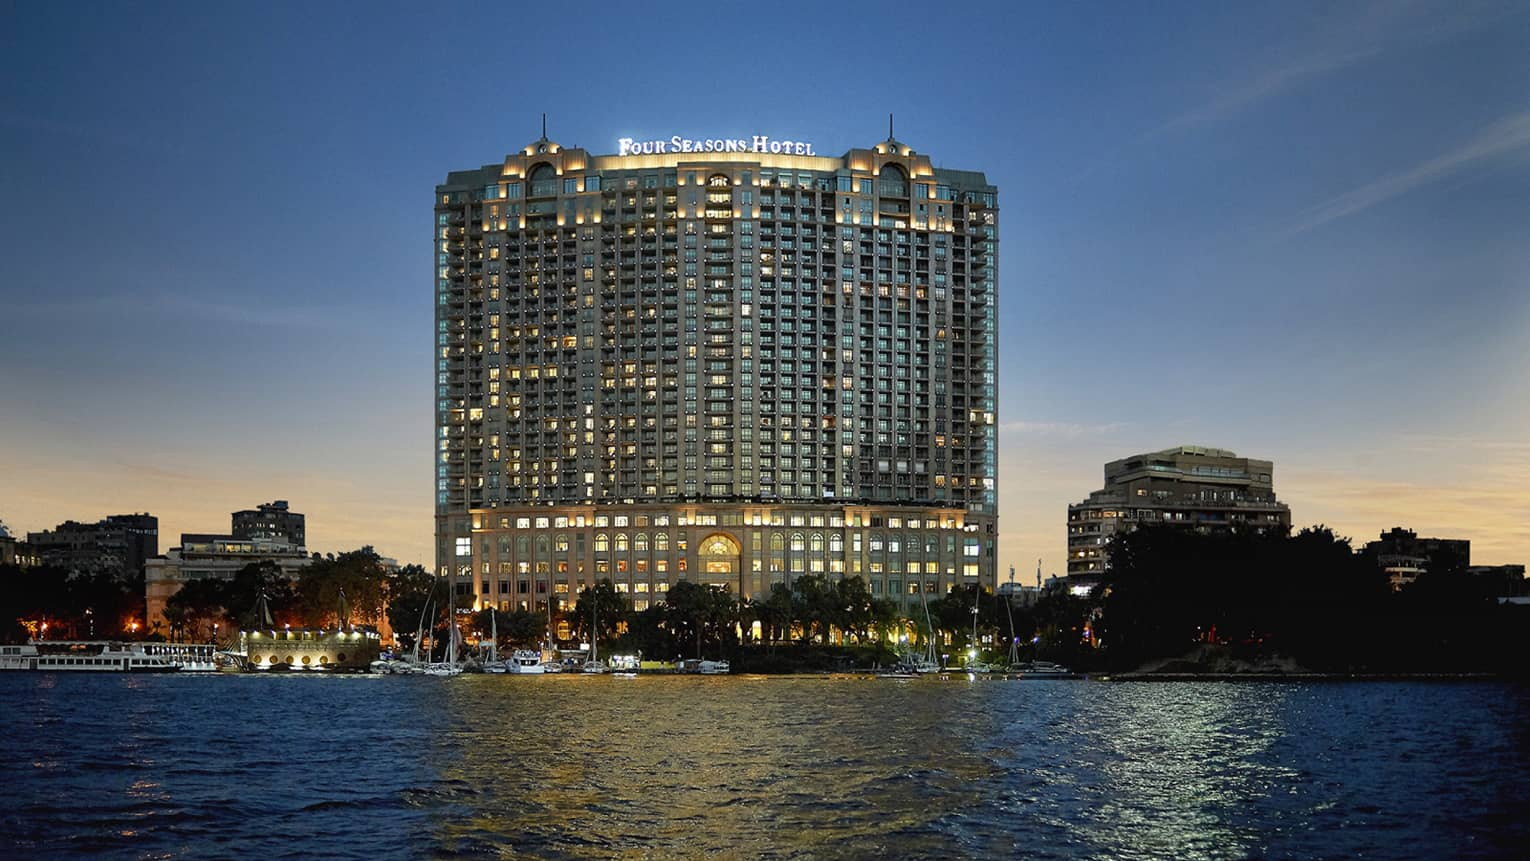 Hotel exterior illuminated at dusk, along the Nile River